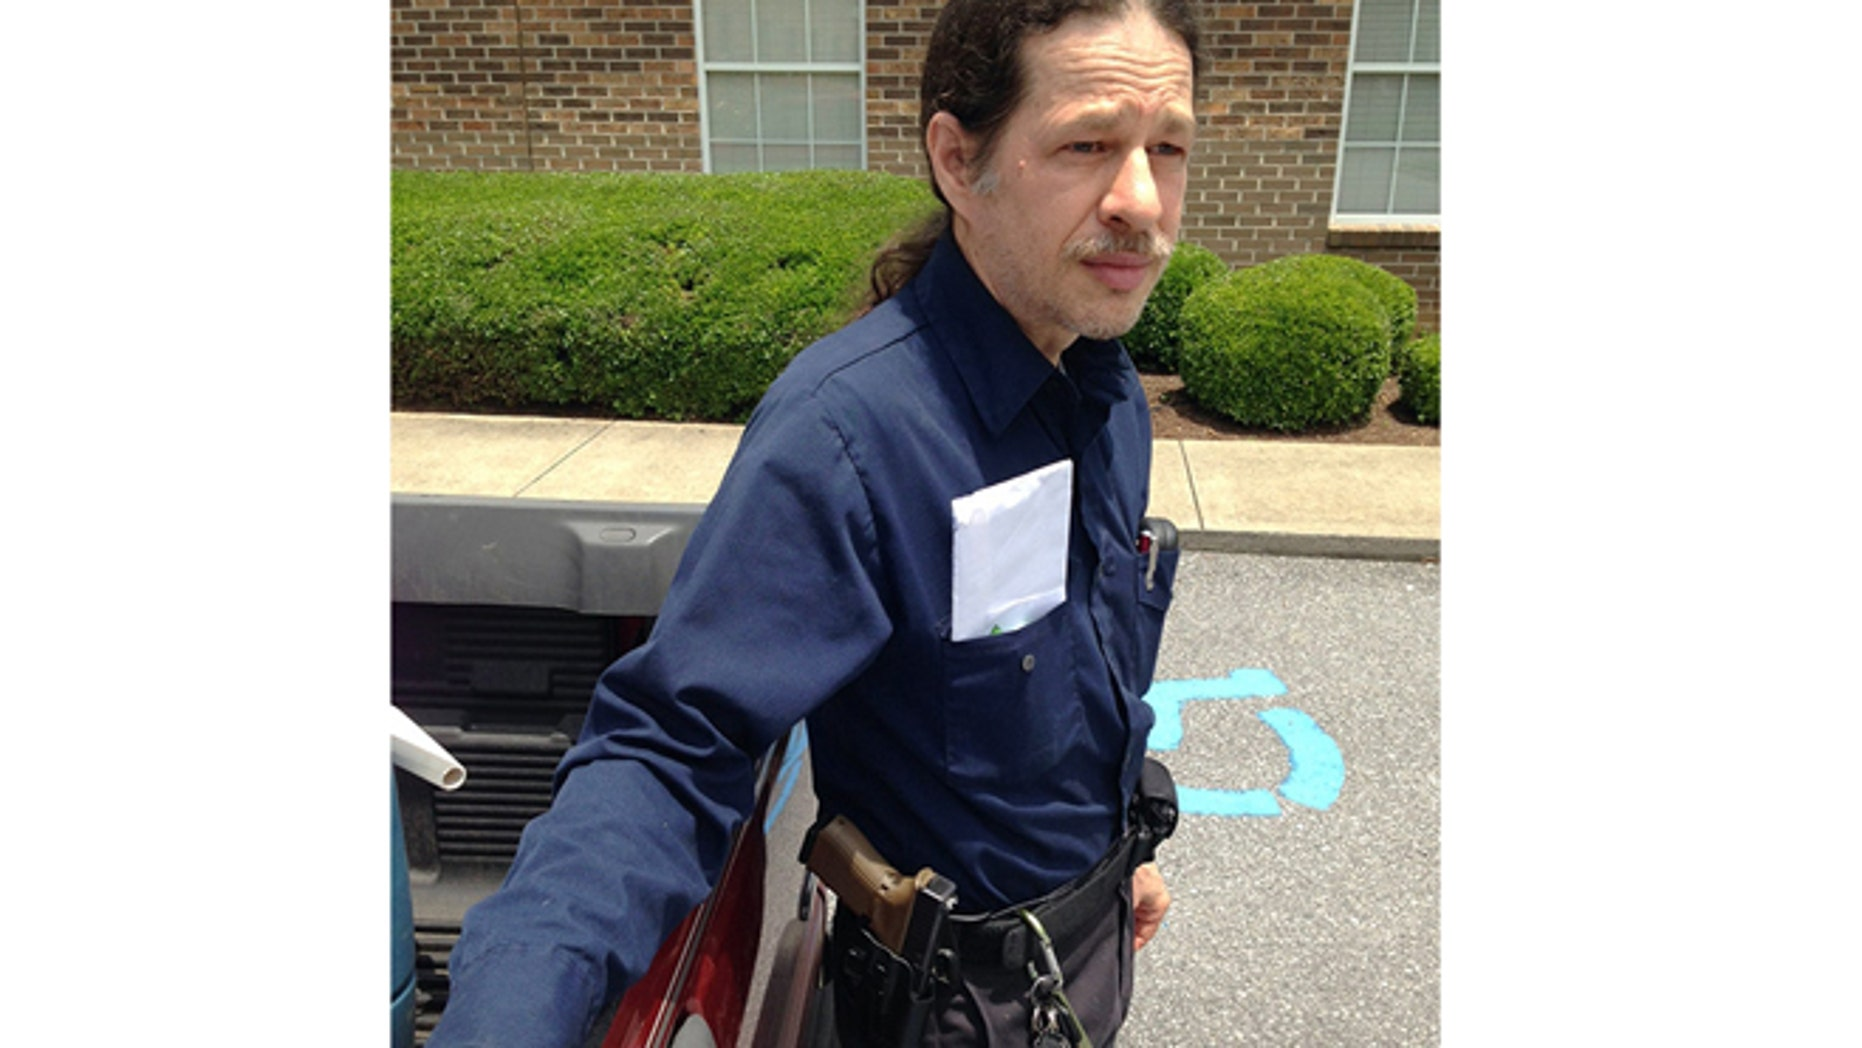 June 3, 2014: Gun rights activist John David Murphy stands outside his voting precinct with his firearm in Alabaster, Ala.